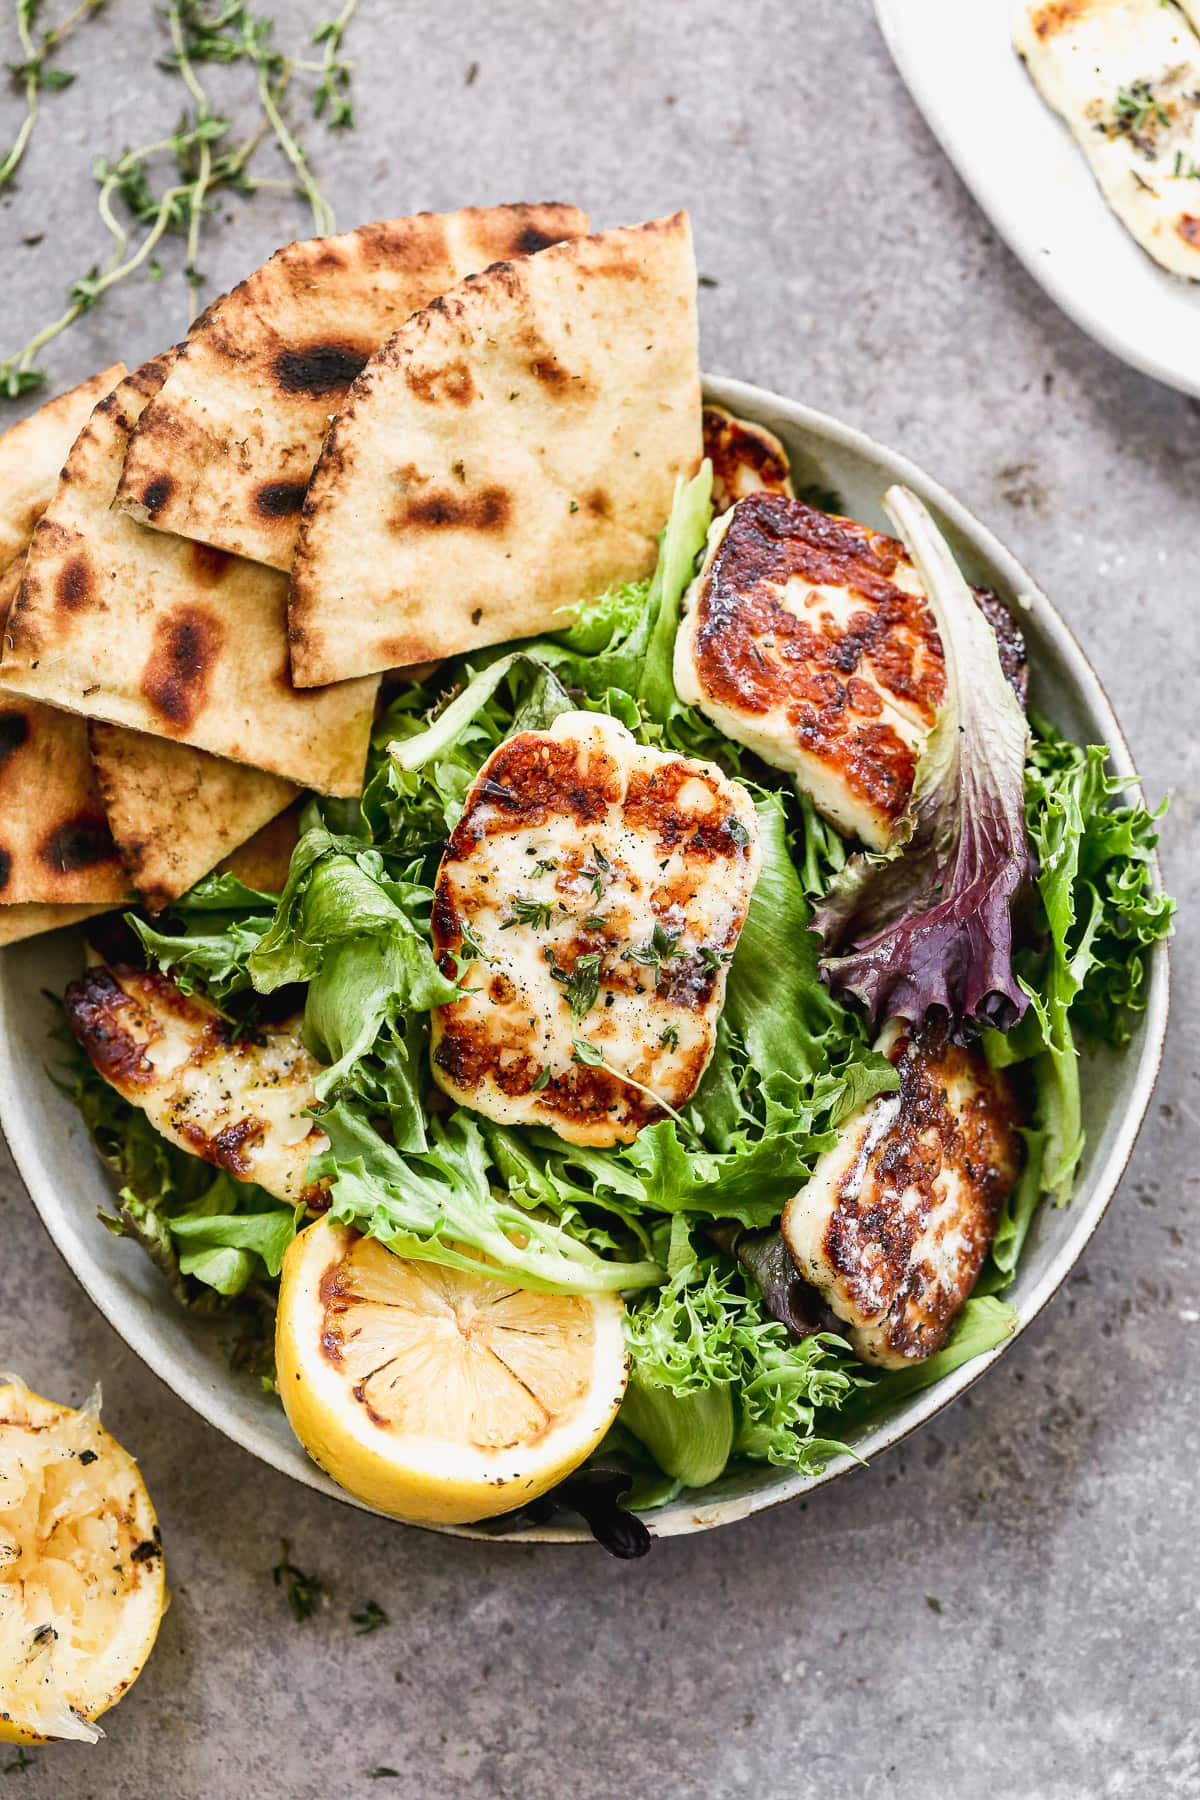 Easy grilled halloumi cheese salad with pita